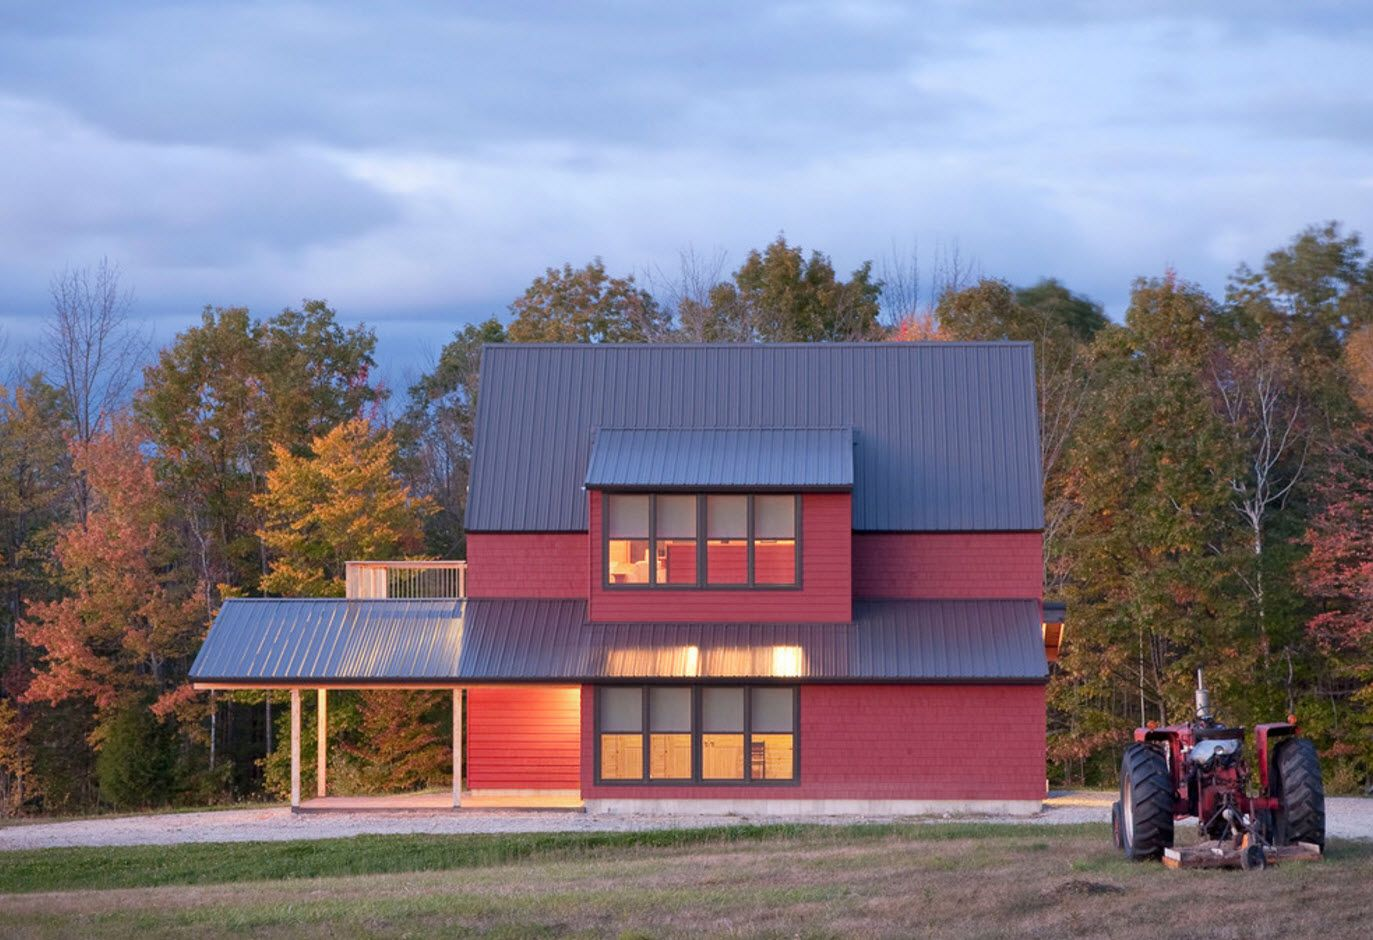 100+ Private House Roofs Beautiful Design Ideas. Complex mansard roof of the red brick house in the forest